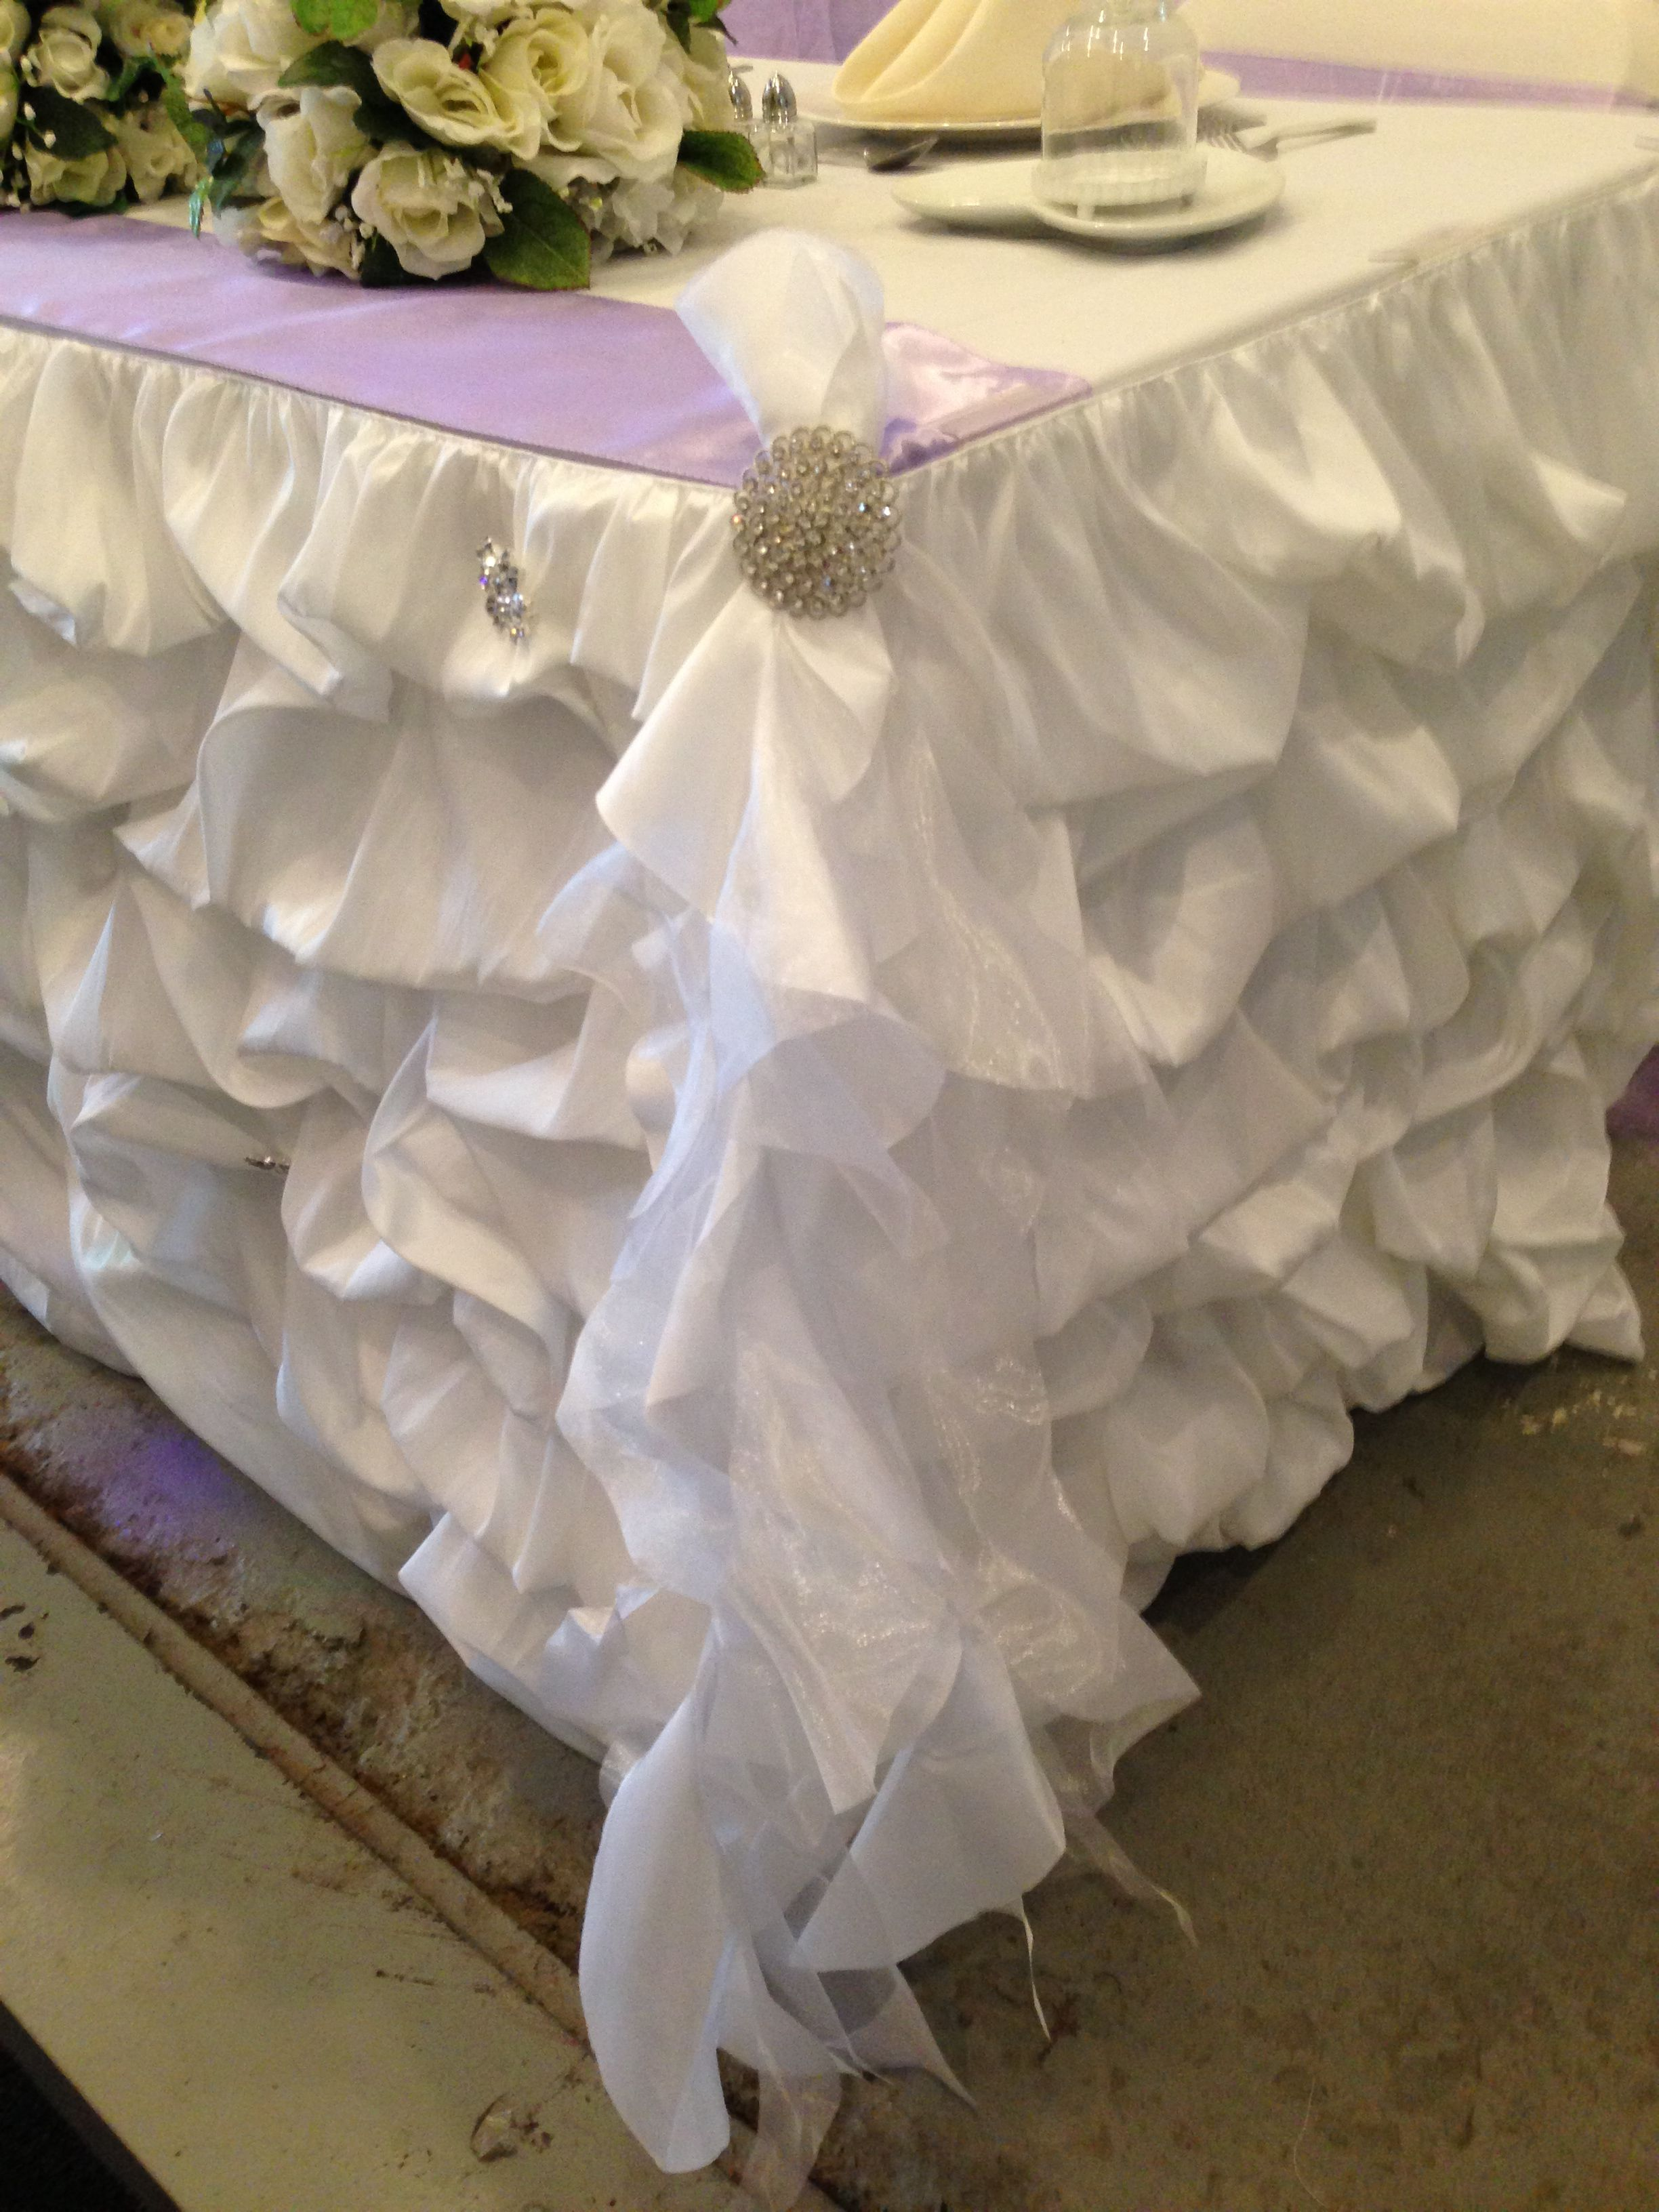 Ordinaire Ruched Table Skirt With Tutu Tie And Buckle